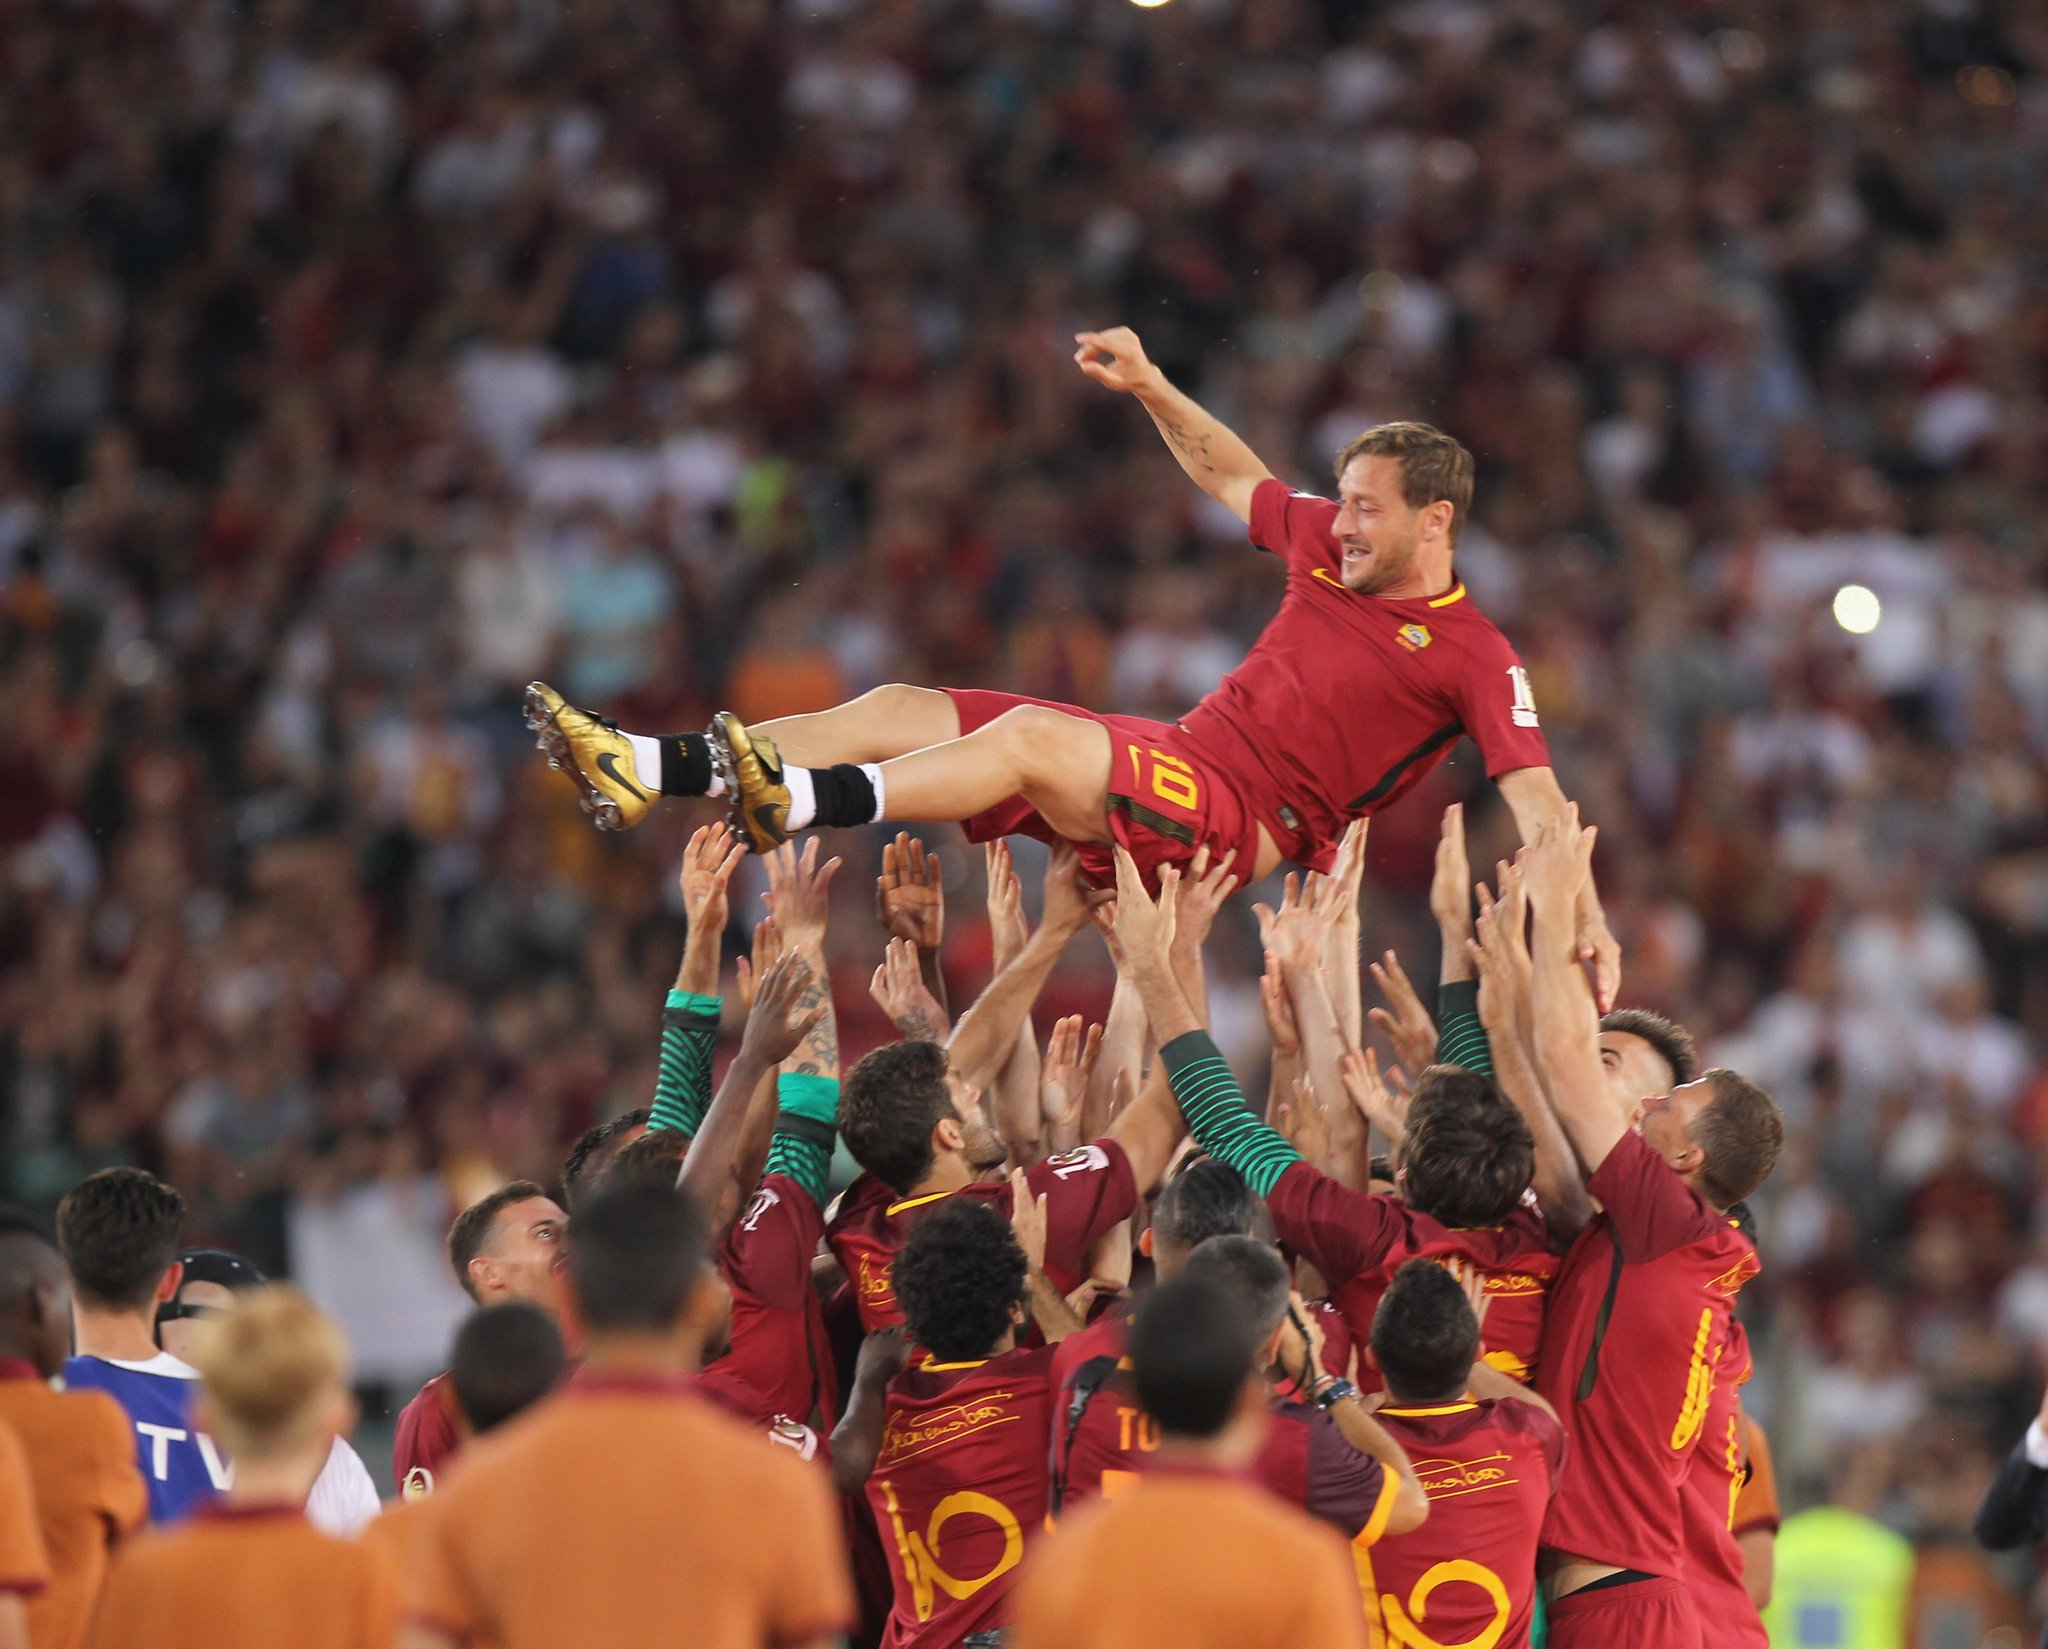 GOODBYE: Totti Retires From Professional Football